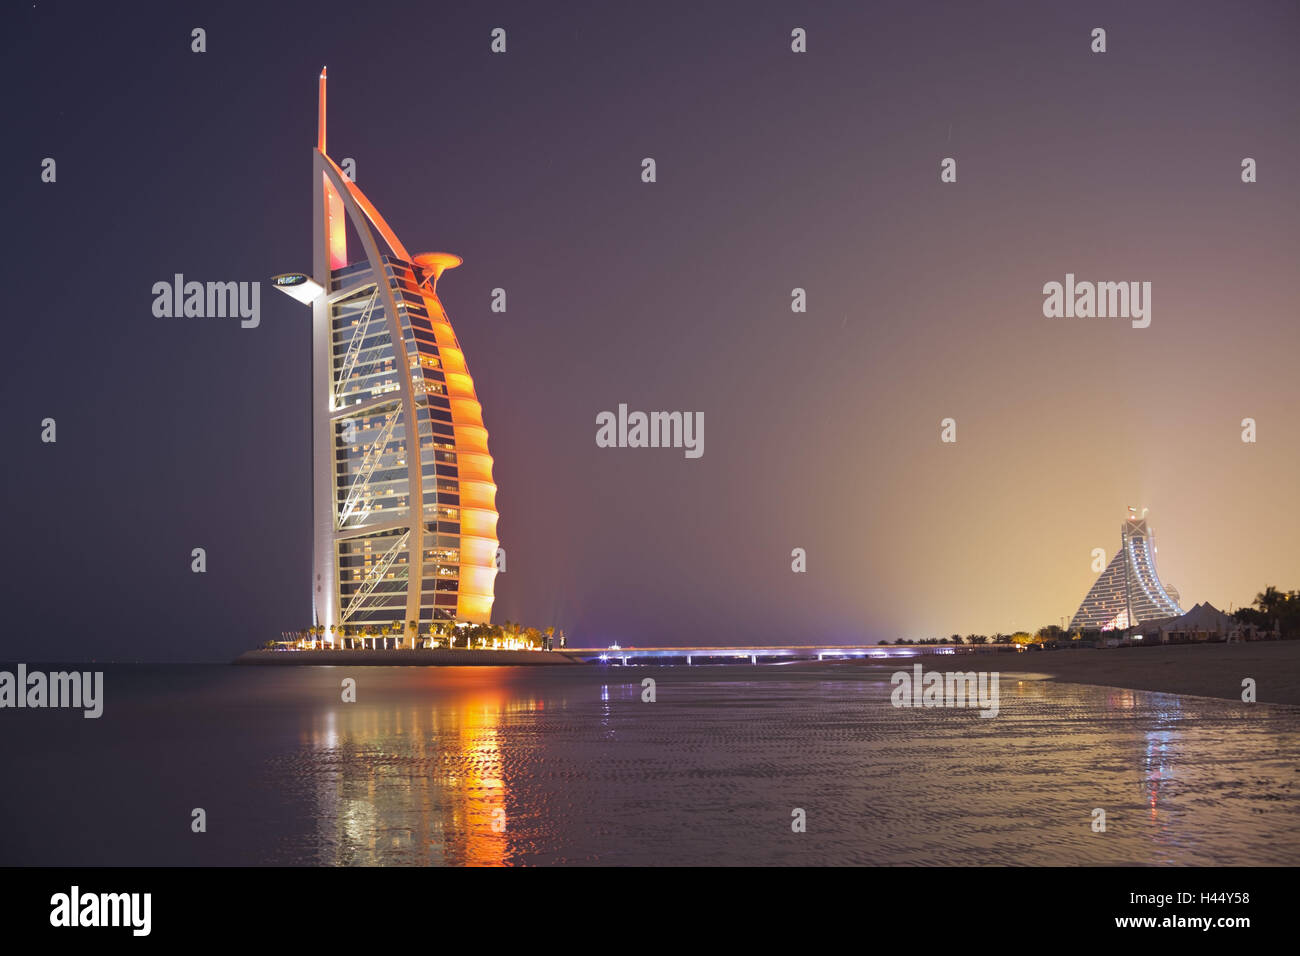 United Arab Emirates, Dubai, Burj Al Arab, evening mood, - Stock Image